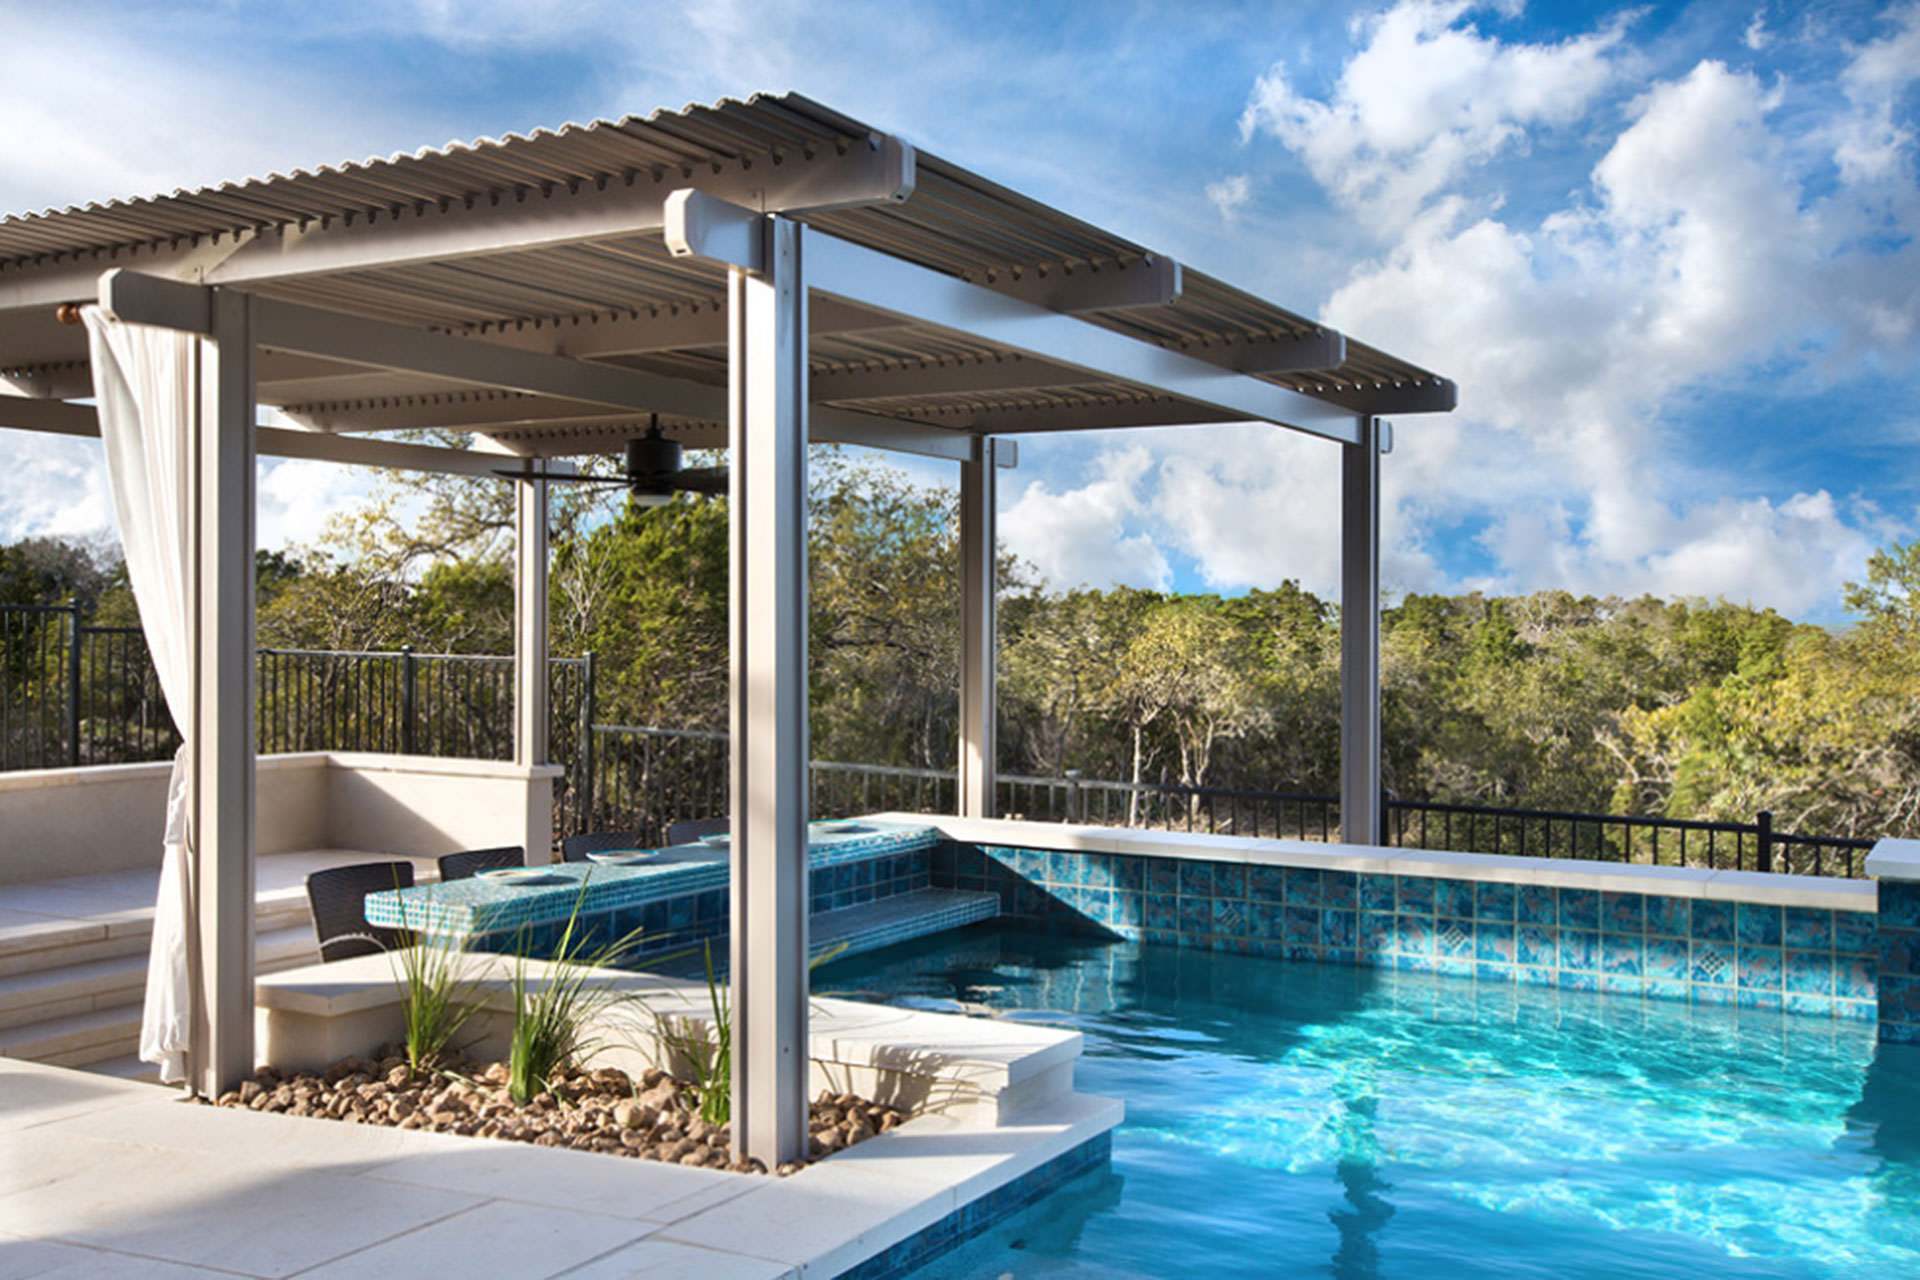 Pool Shade Ideas: 8 Ways to Cover Your Swimming Pool on Covered Pool Patio Ideas id=63765